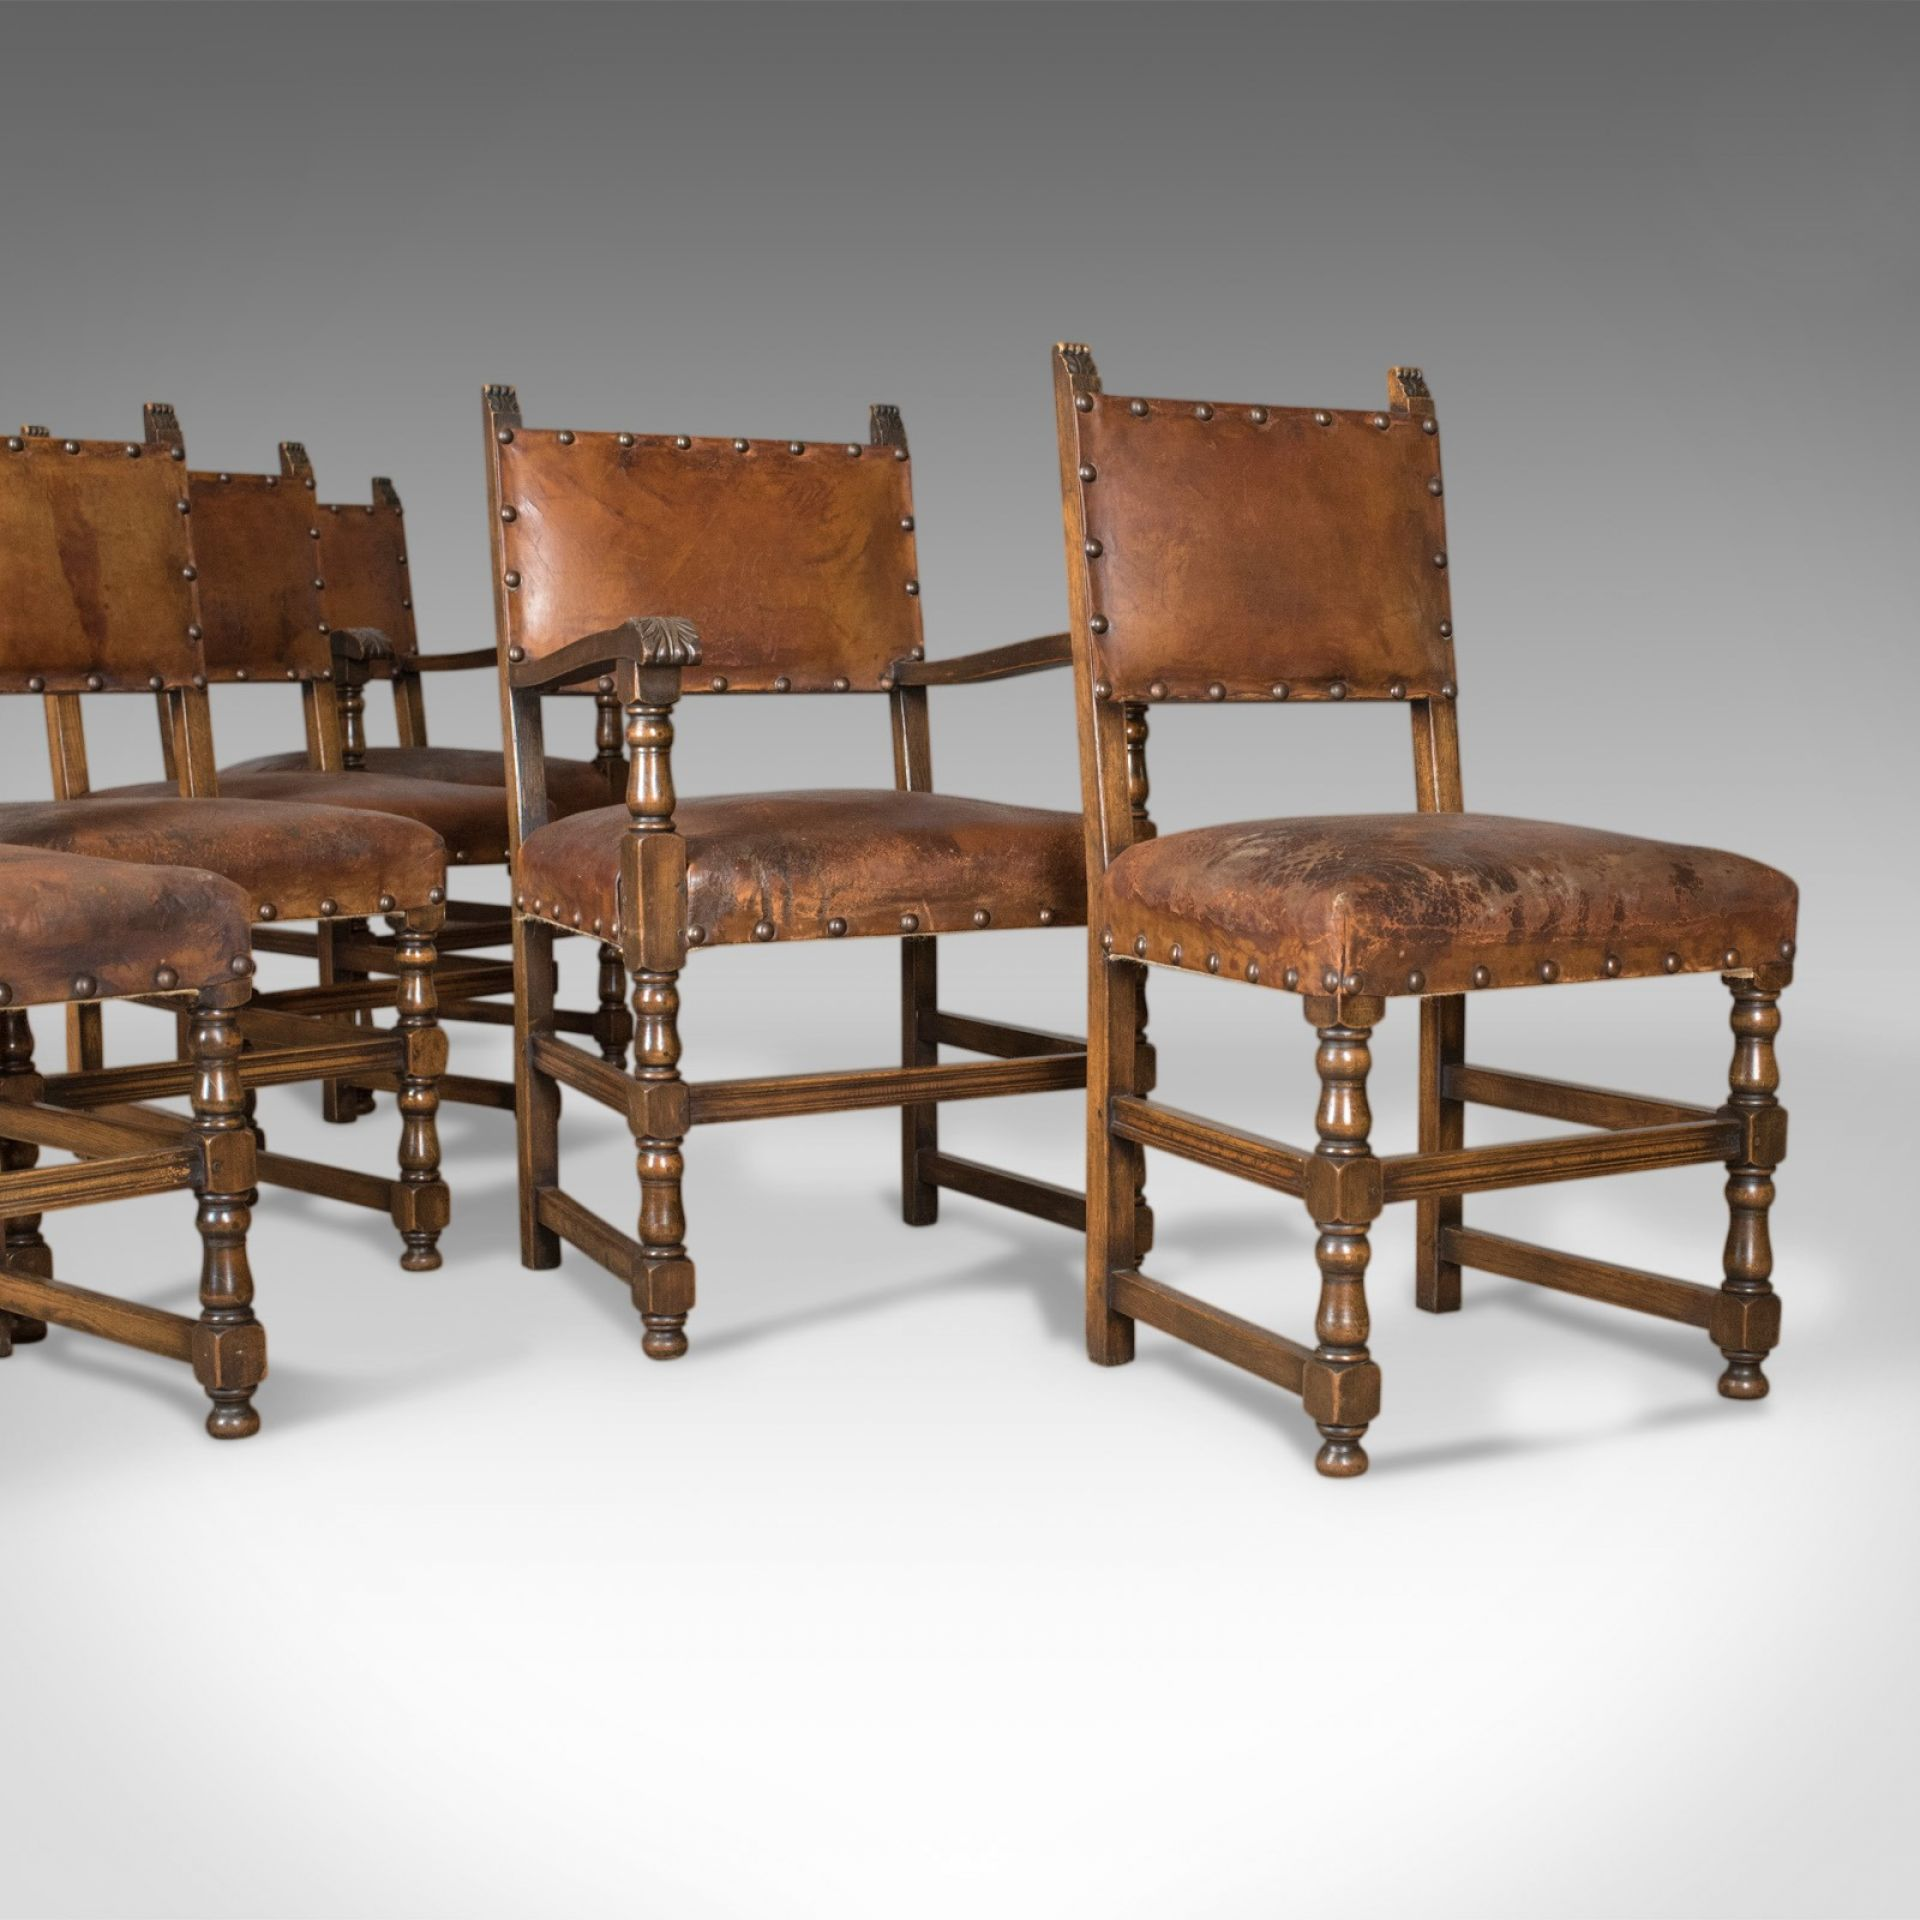 Set of Six Antique Dining Chairs, Edwardian in 17th Century Taste, Oak Leather